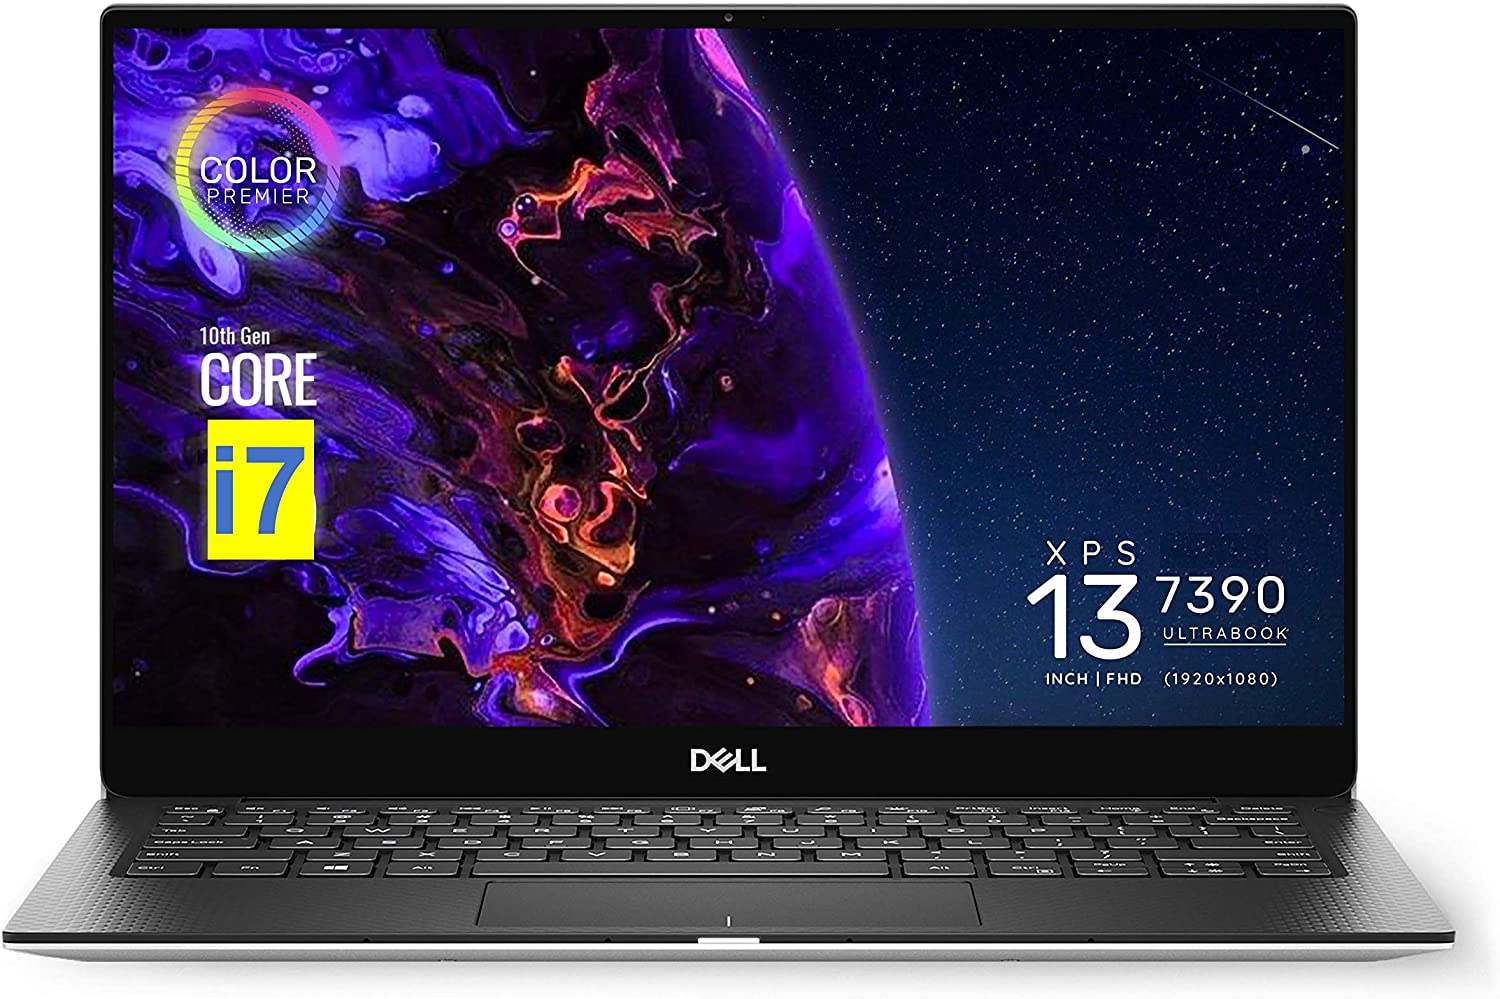 """DELL XPS 13 7390 13.3"""" FHD (1920 x 1080) InfinityEdge Laptop"""